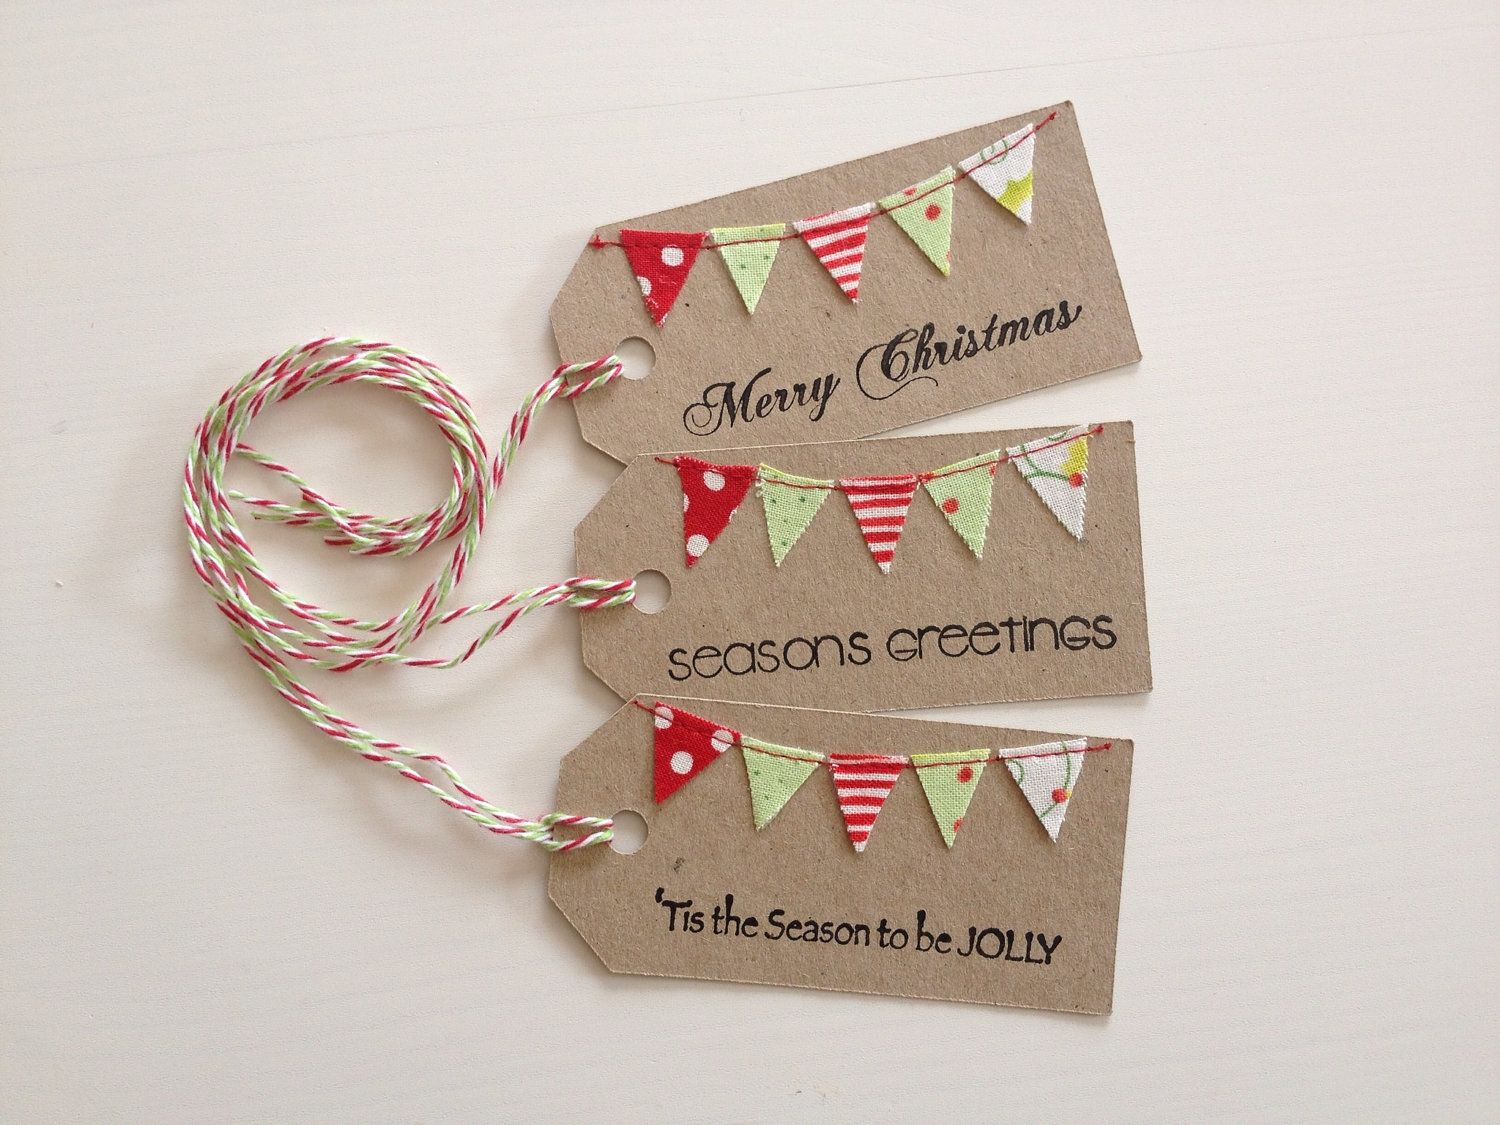 Homemade gift tag ideas images 25 uni christmas gift ideas